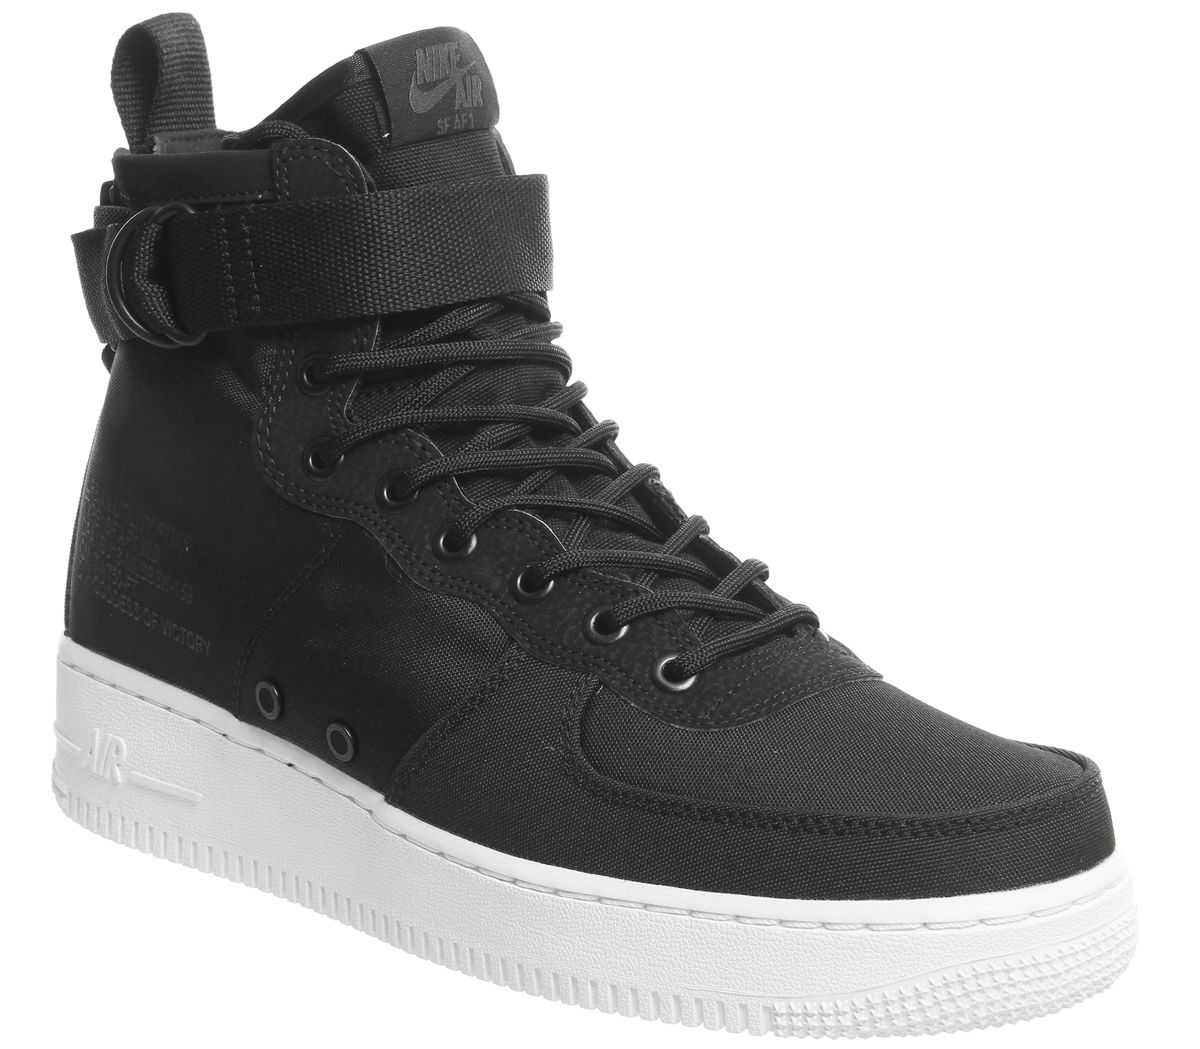 6dcc0aeb Nike Sf Af1 Mid 17 Trainers Black Anthracite White - His trainers